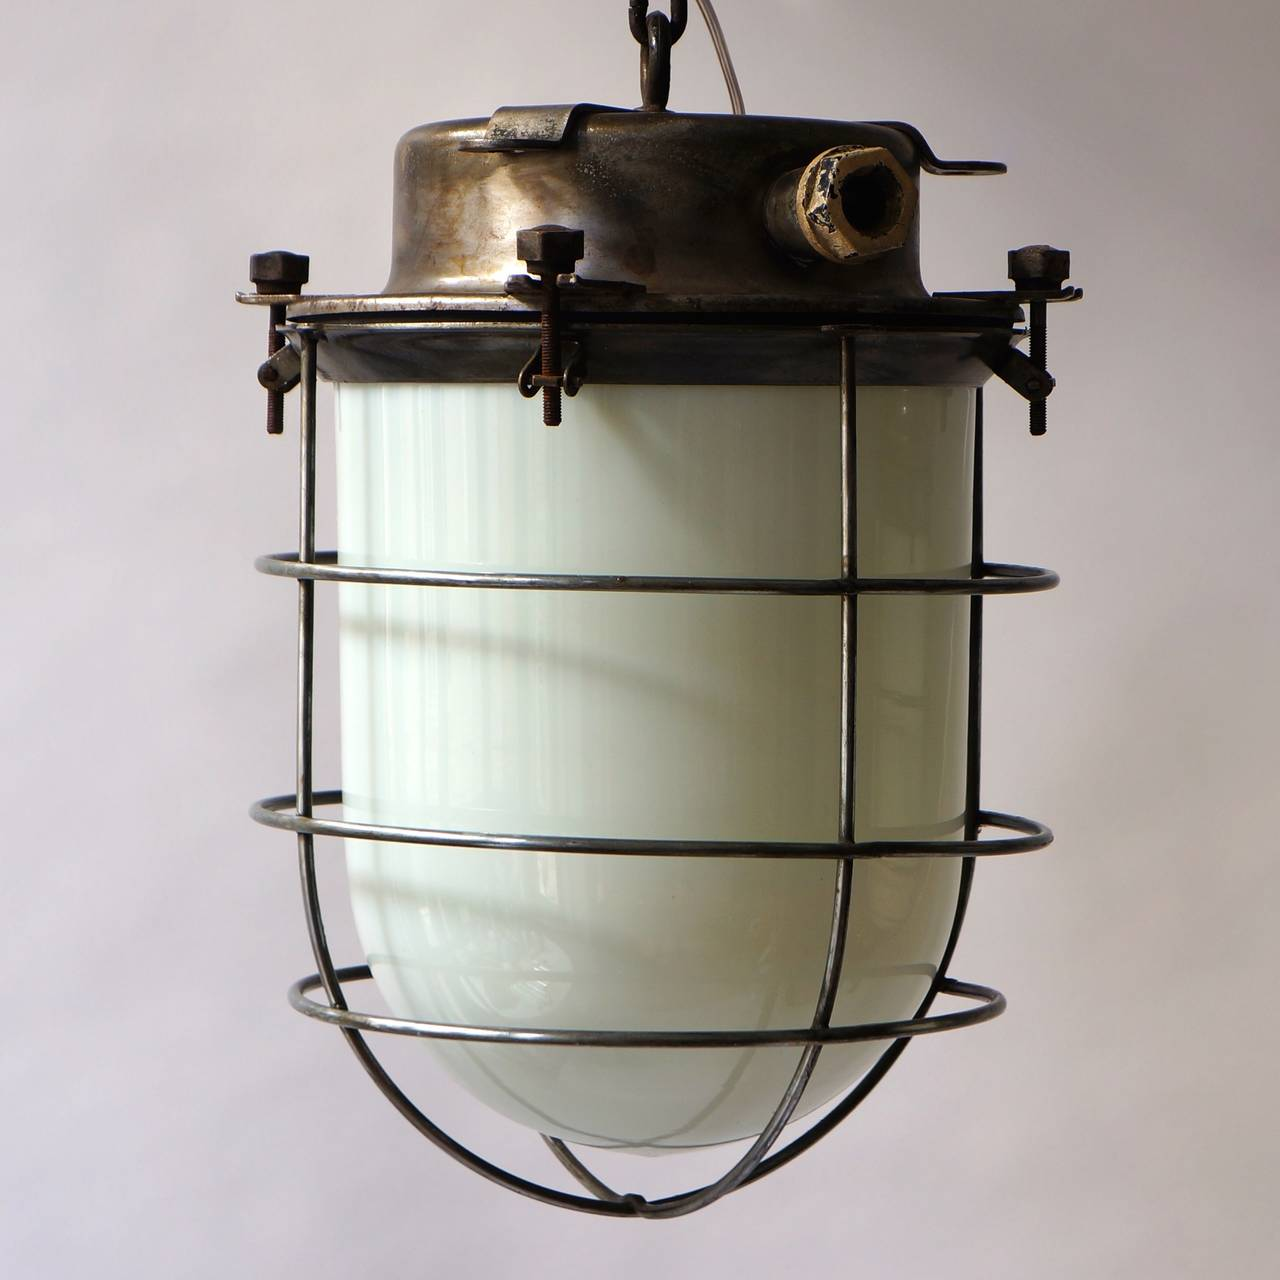 Industrial Lamps For Sale Four Vintage Industrial Hanging Lamps For Sale At 1stdibs